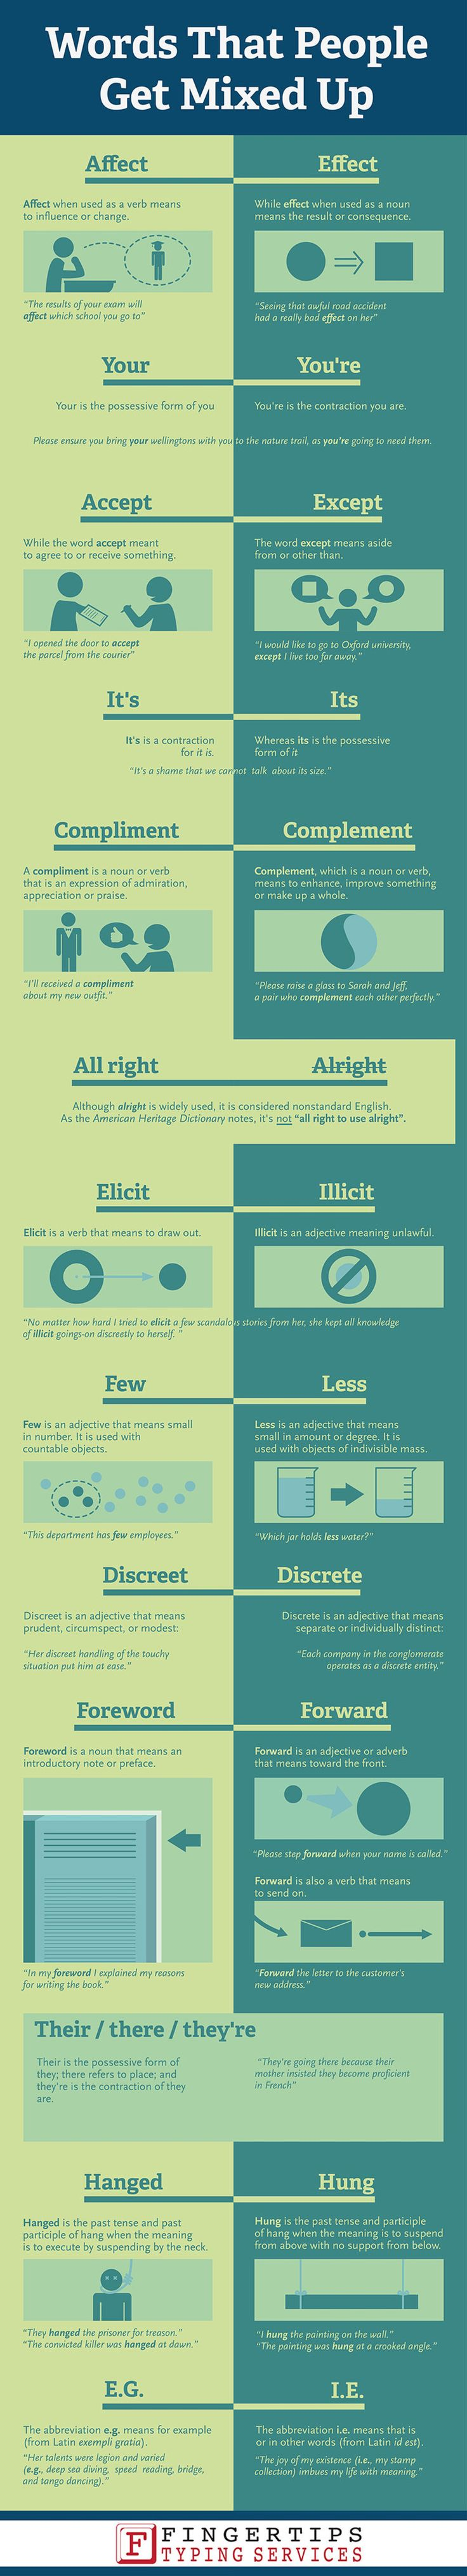 Words That People Get Mixed Up Infographic